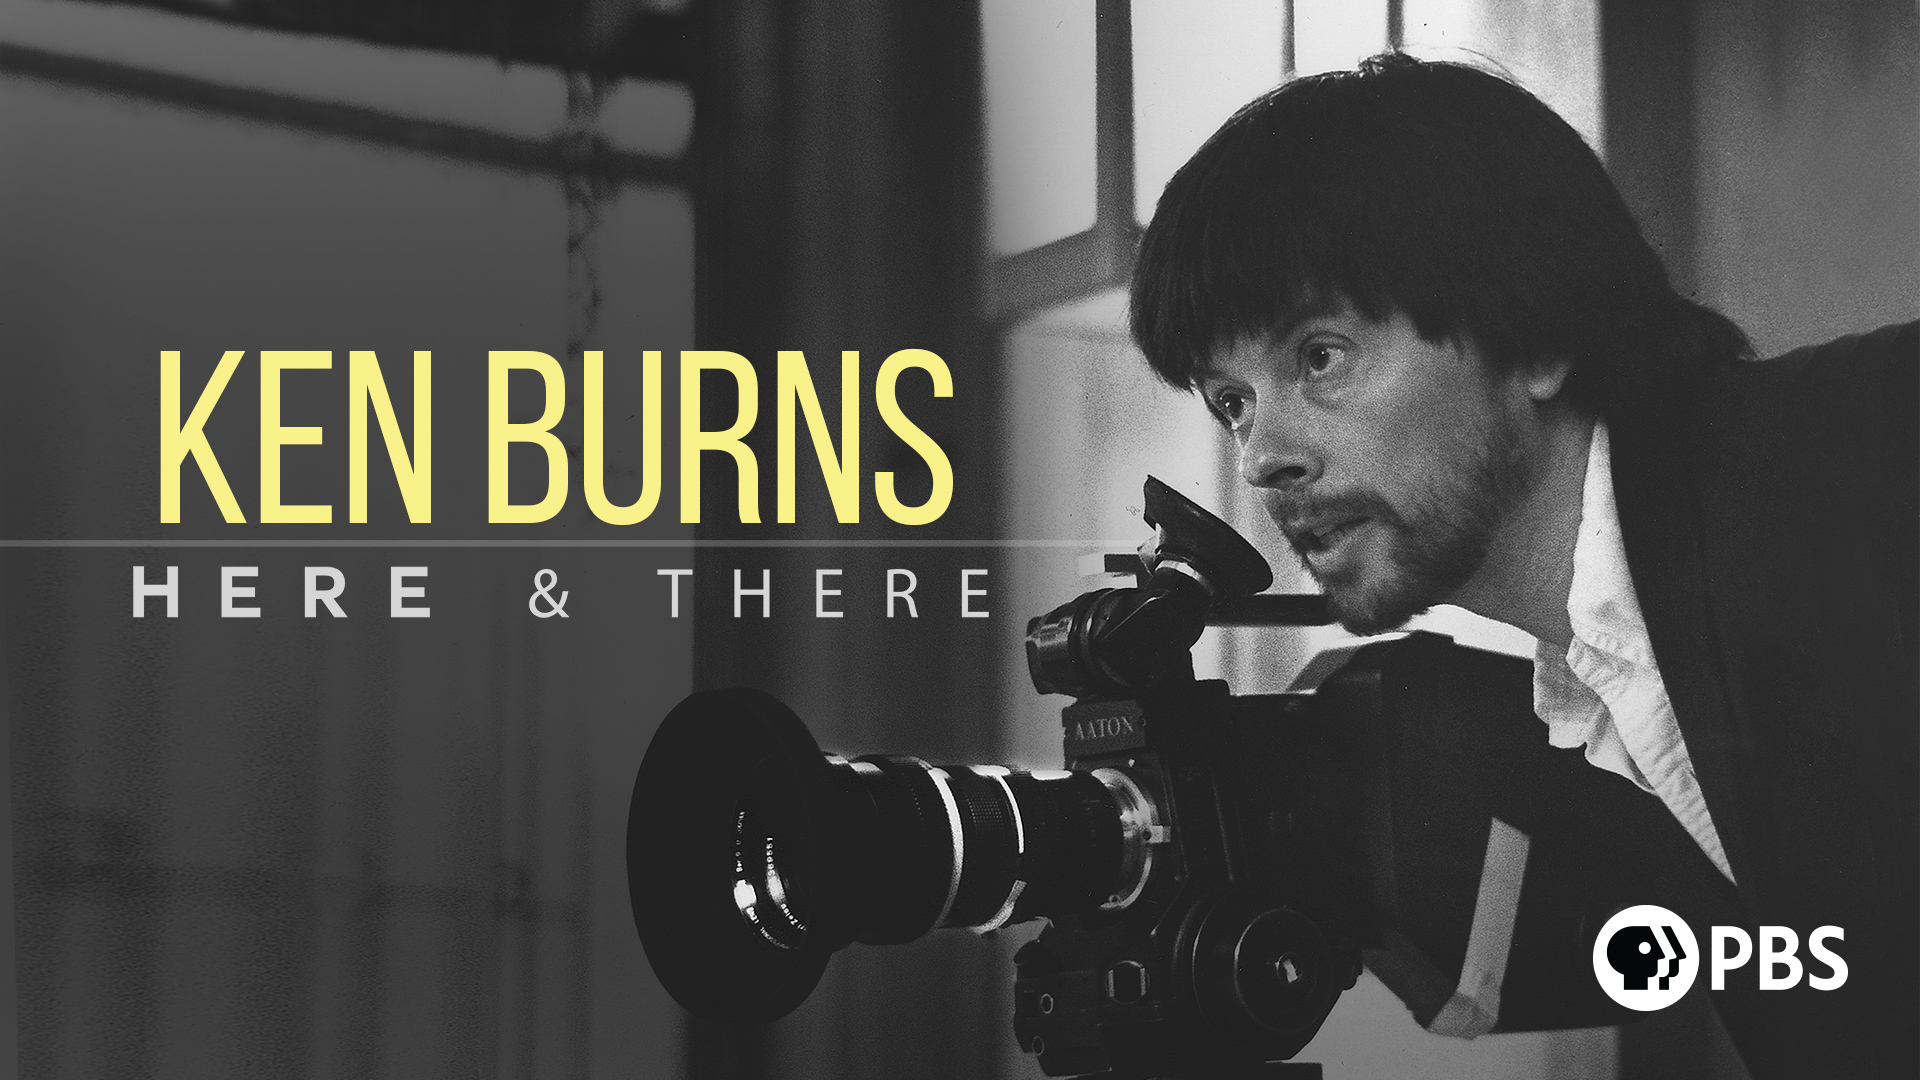 Ken Burns: Here & There: Season 1